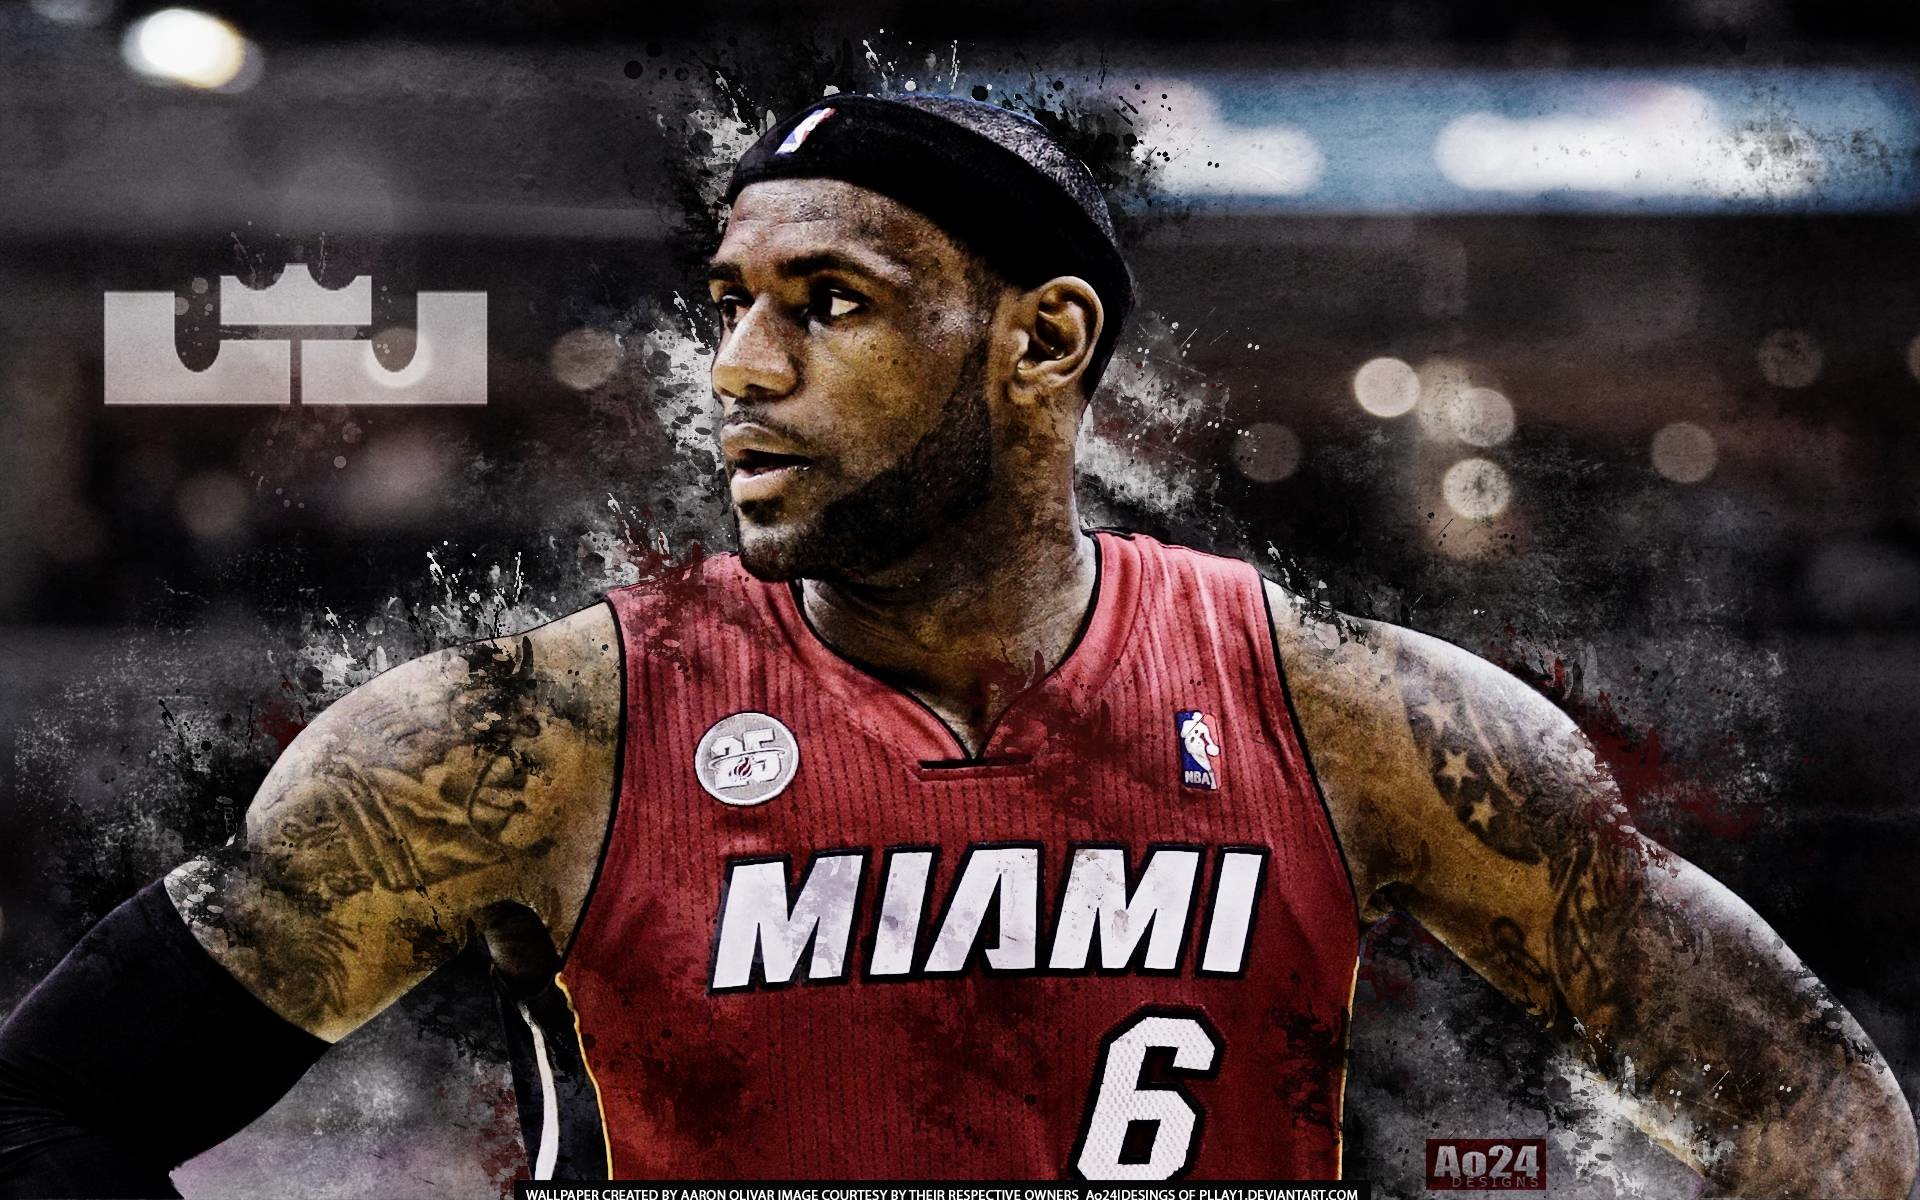 Lebron James Wallpaper HD Heat (79+ images)